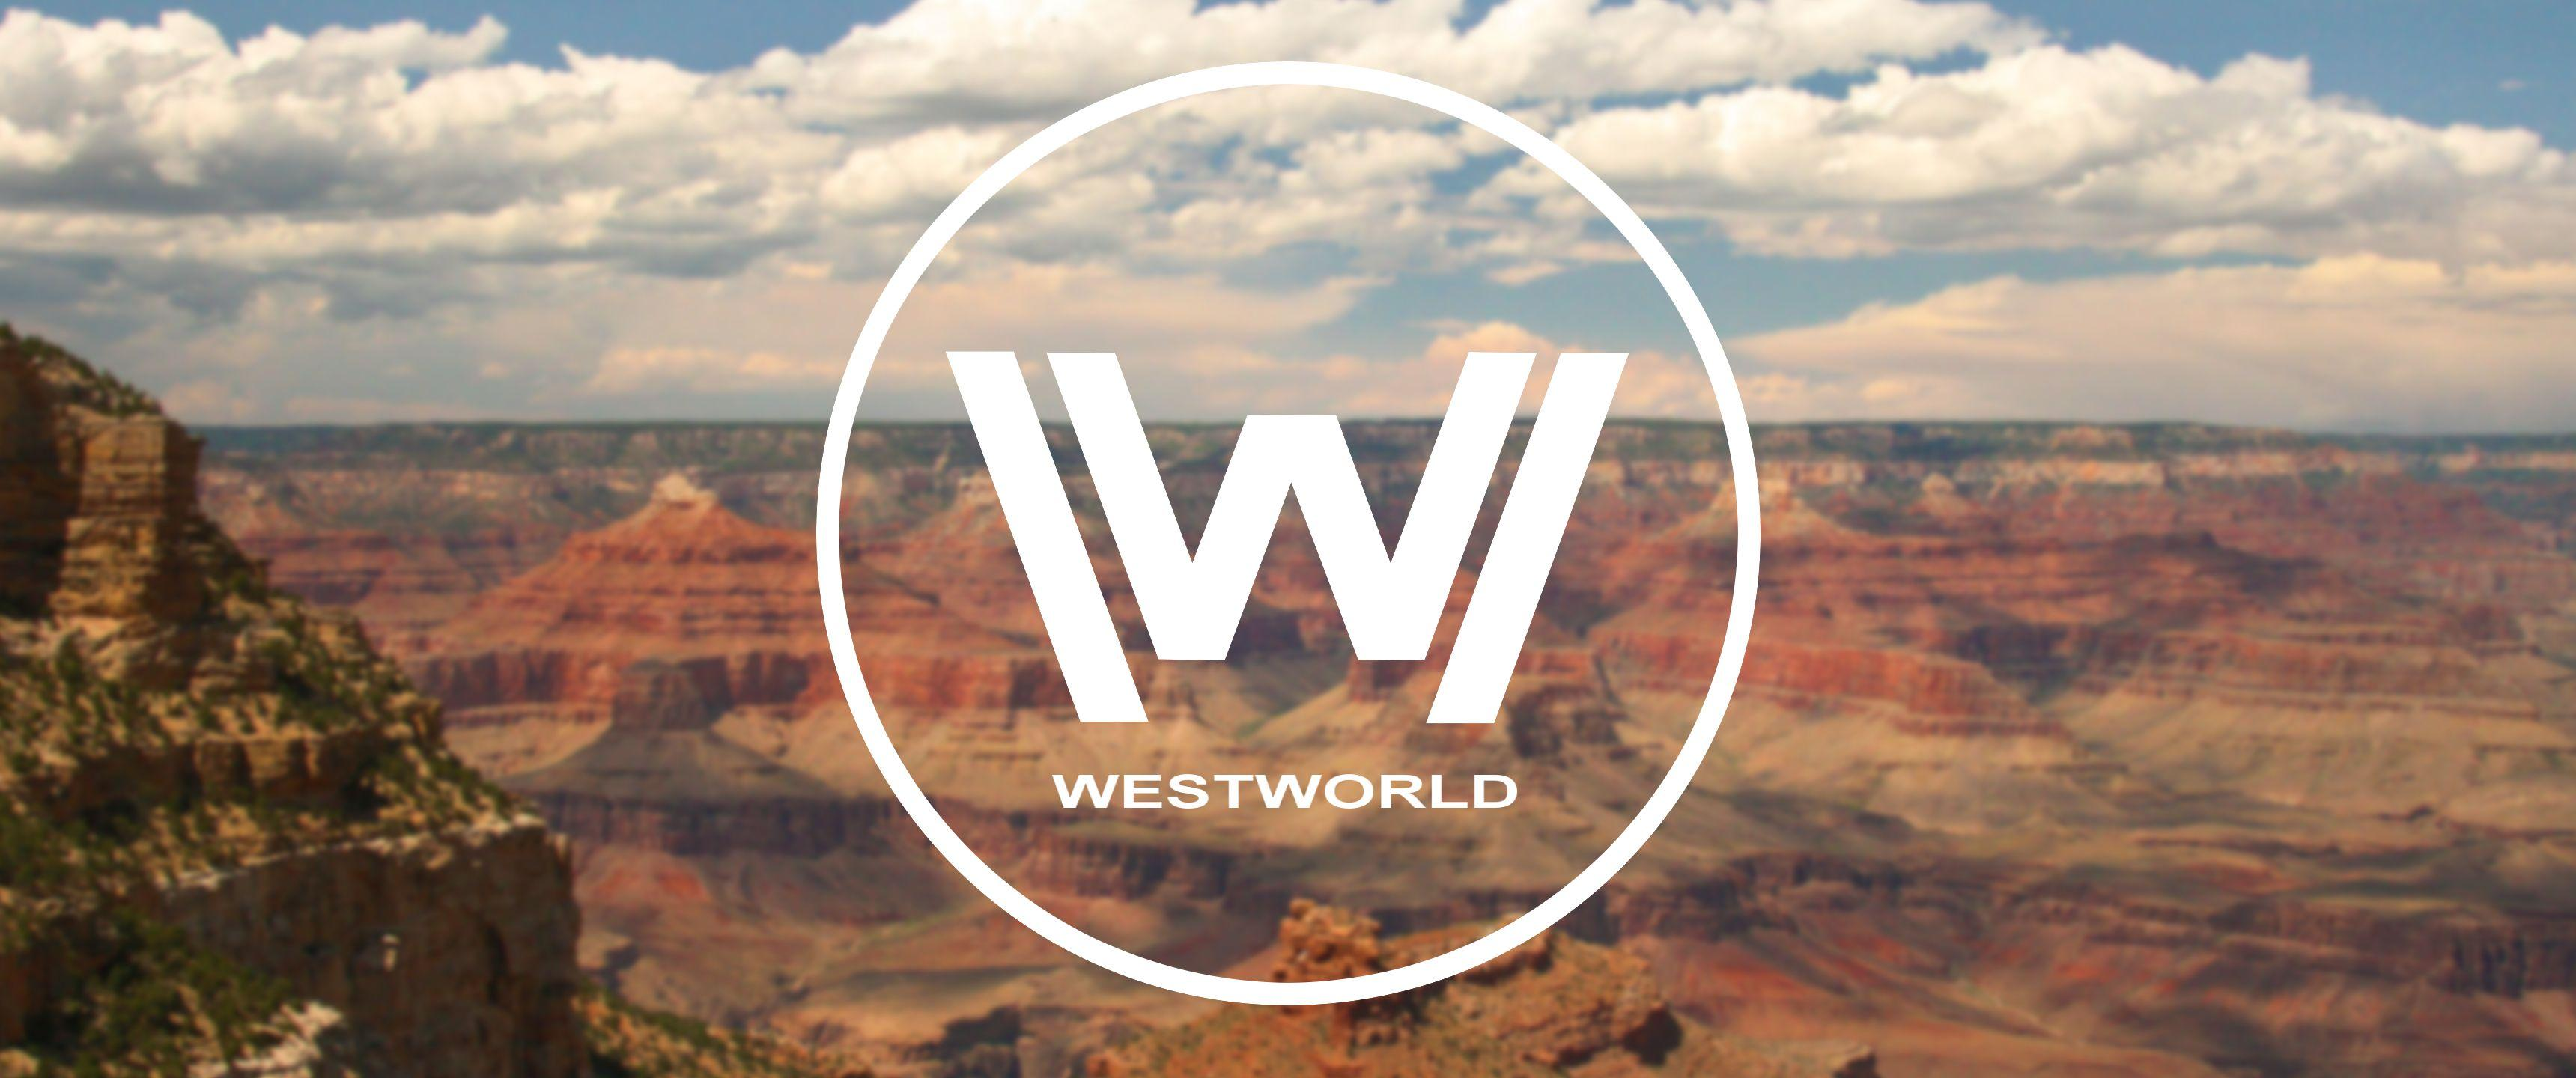 Haven't seen a Westworld wallpapers for ultrawides. Made a simple